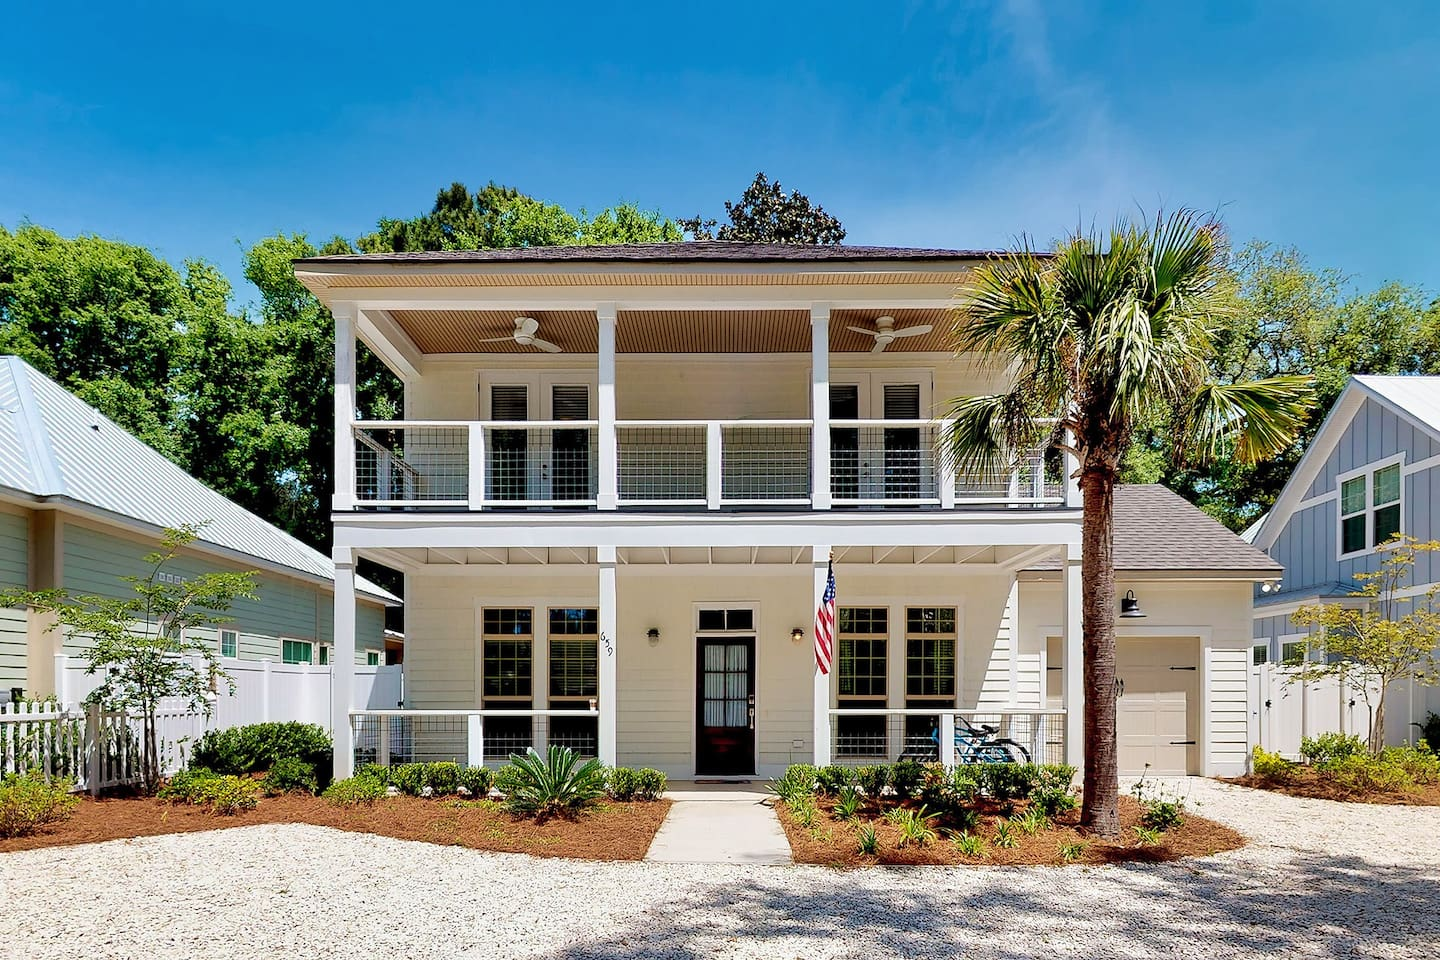 New Construction Coastal Cottage as Seen on HGTV!